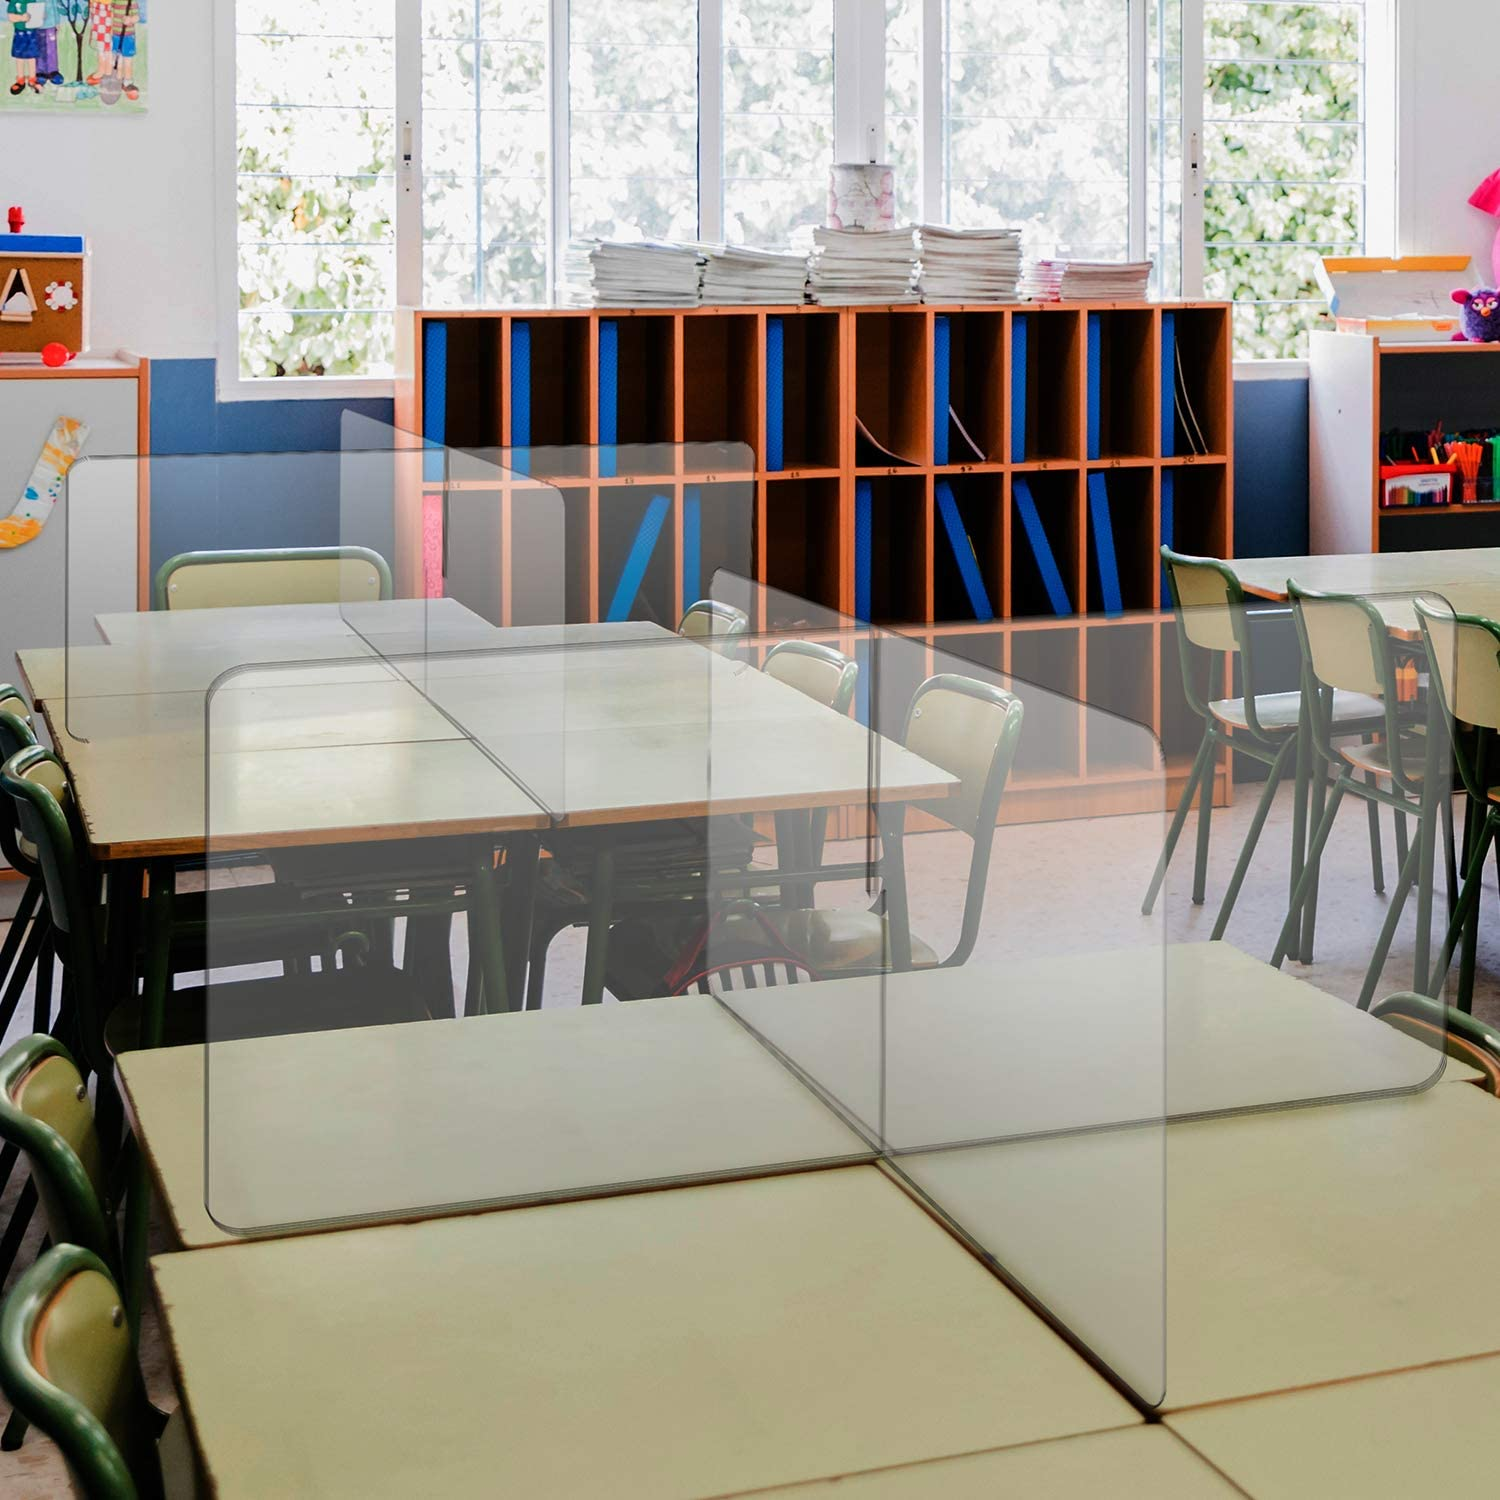 Barrier Against Virus Spread Board School Tabletop Desk Divider Sneeze Guard Protective Plexiglass Shield for Counters 4 x 2 x 4 Clear Acrylic 4 Person Desk Divider